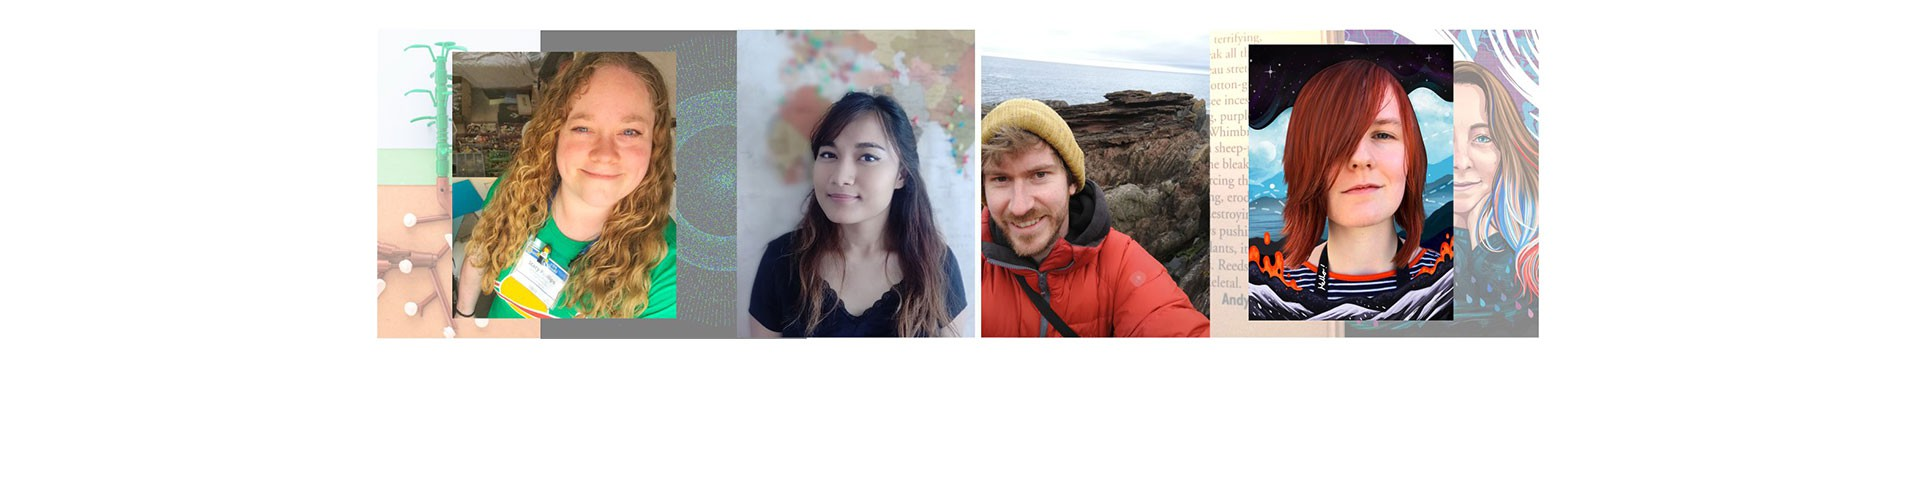 Artists participating in vEGU21 (Credit: From the left: Stacy Phillips, Priyanka Das Rajkakati, Andy Emery, Kelly Stanford)